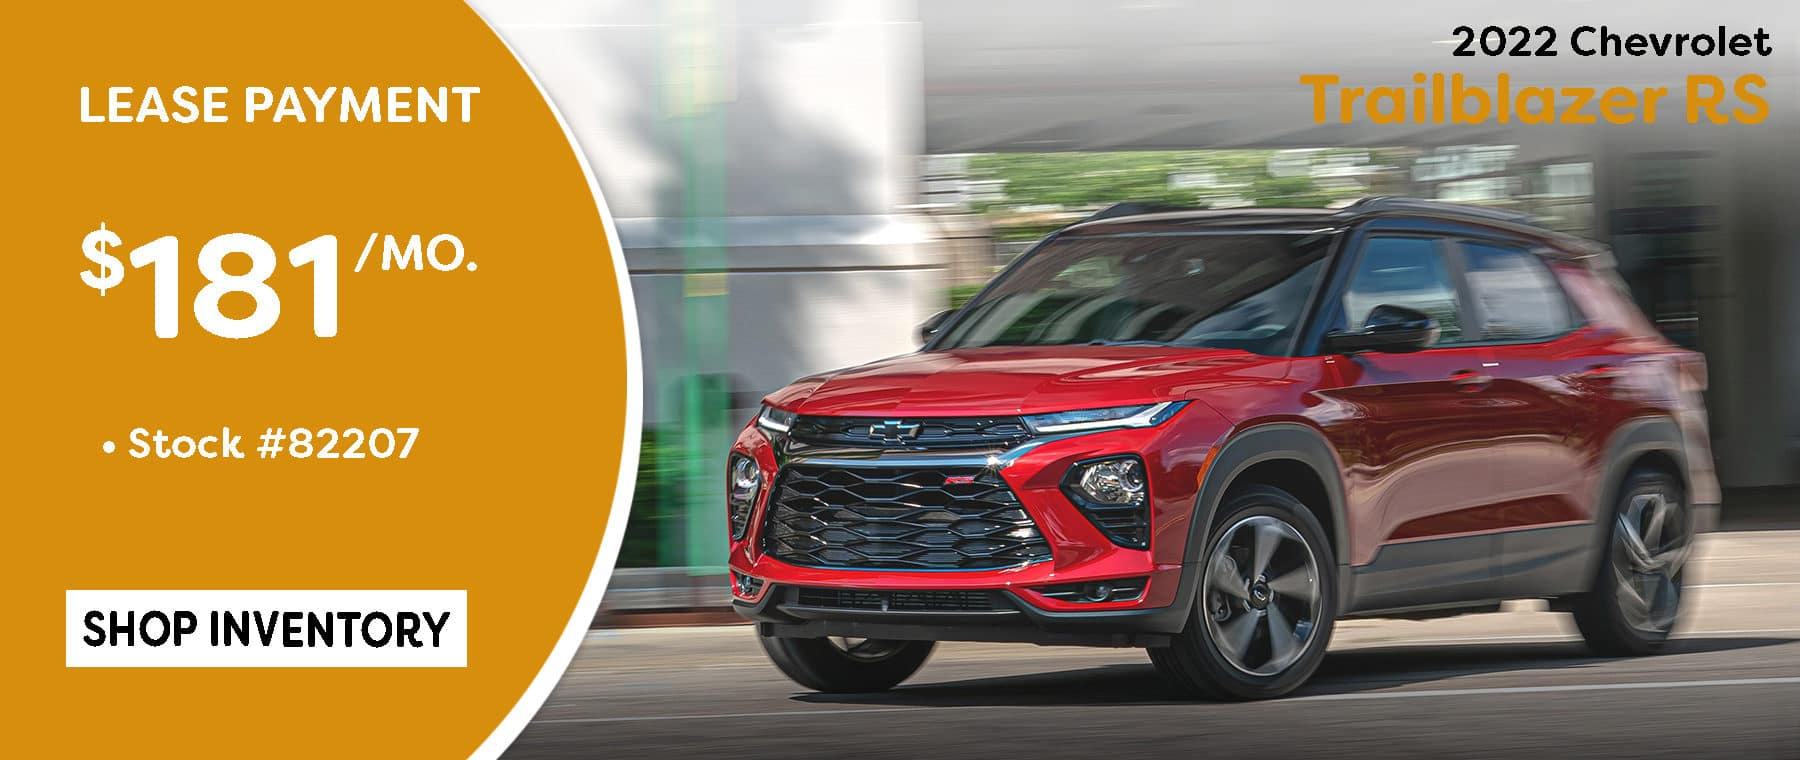 October Trailblazer RS Lease special $181/mo*